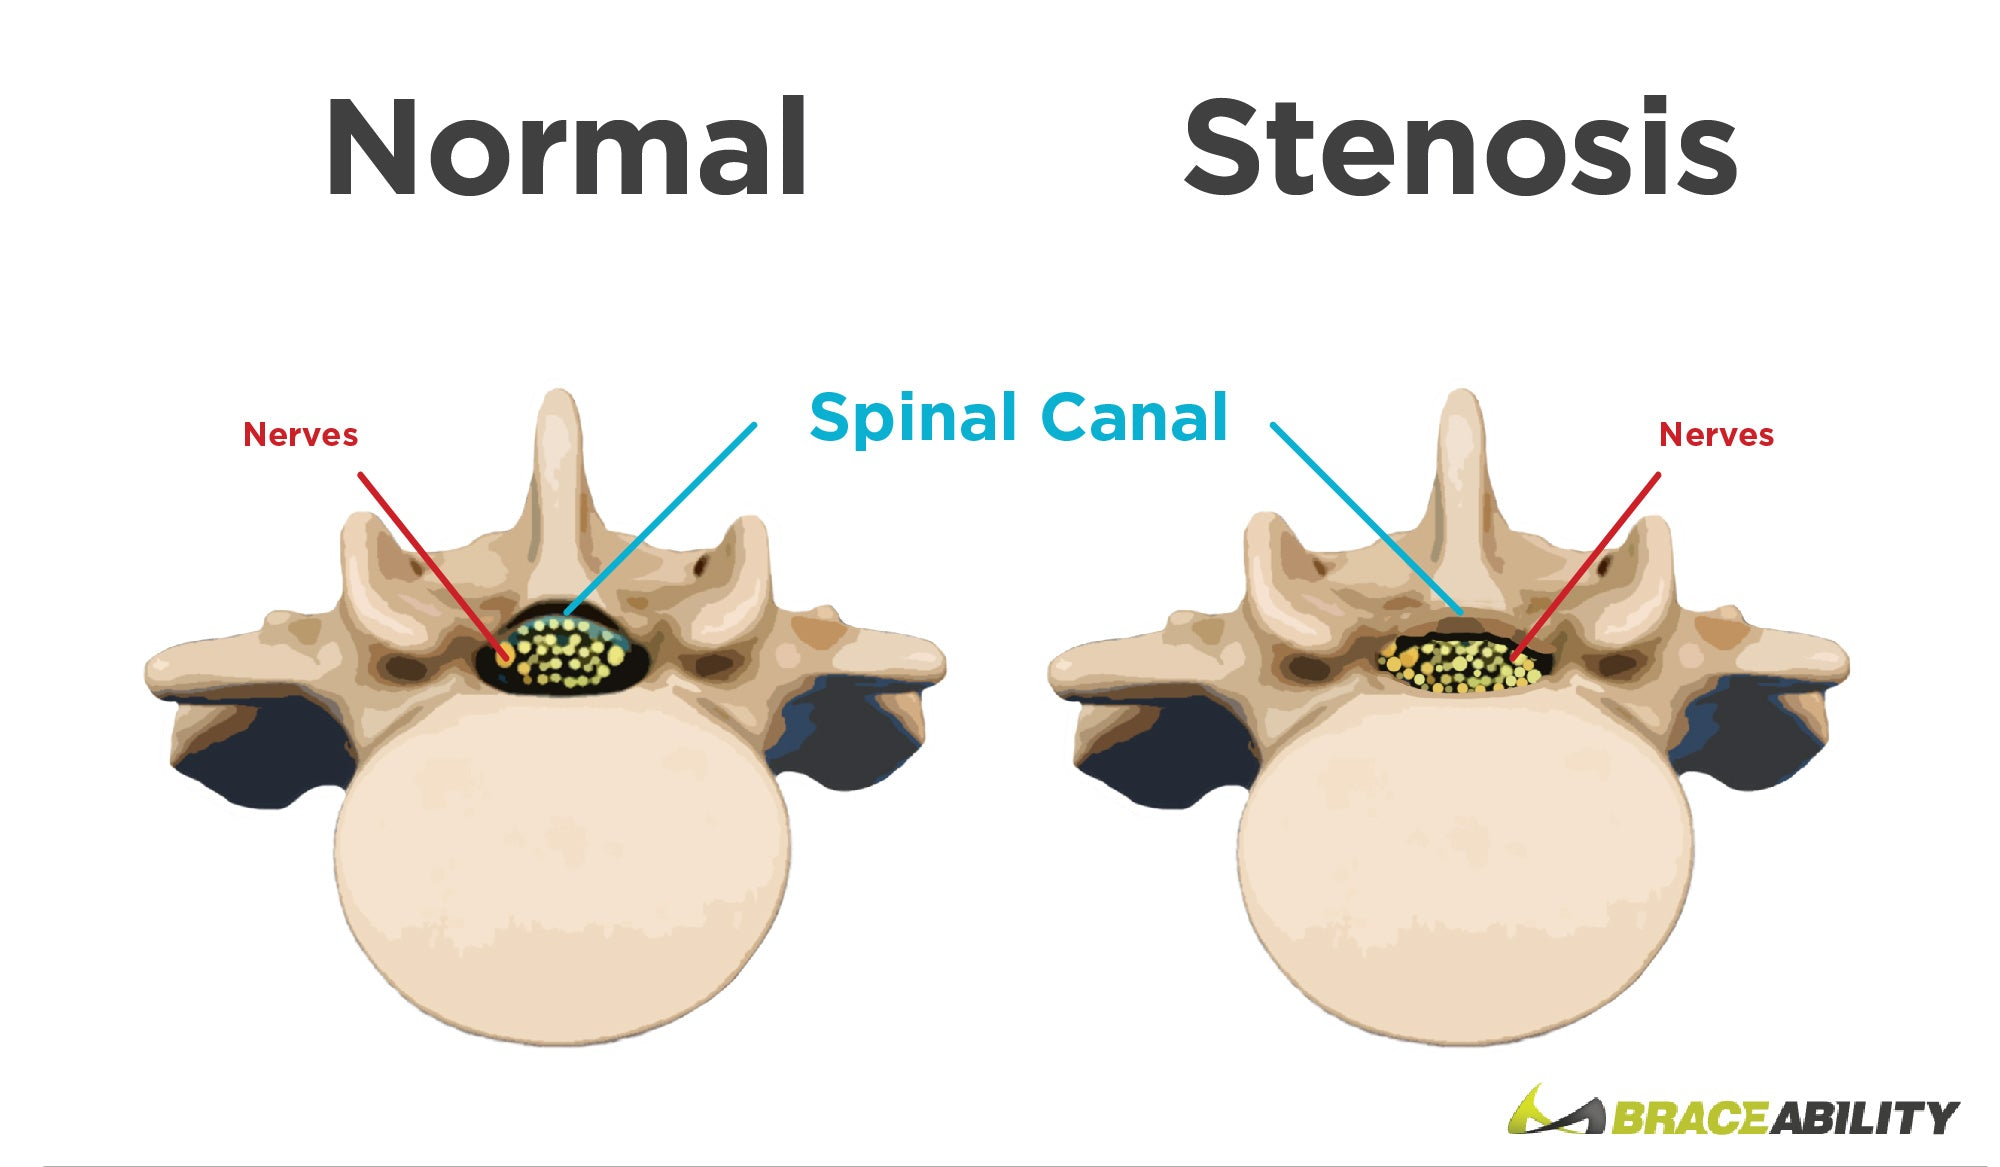 tingling and muscle weakness in your spine is likely from a narrowing spinal canal causing stenosis